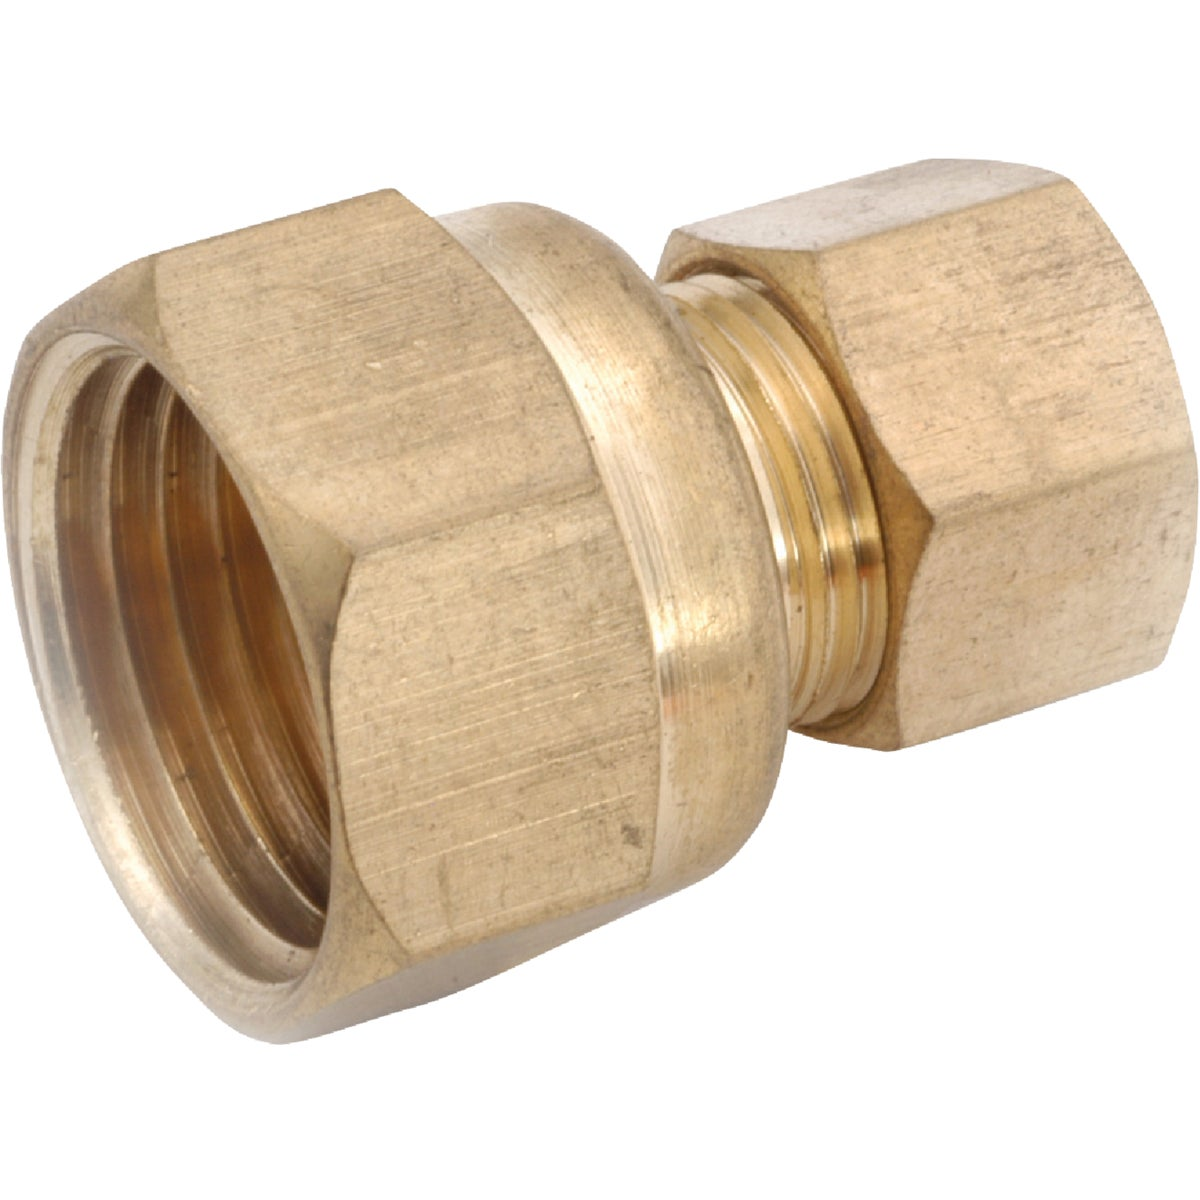 3/8X1/2 FEMALE COUPLING - 750066-0608 by Anderson Metals Corp